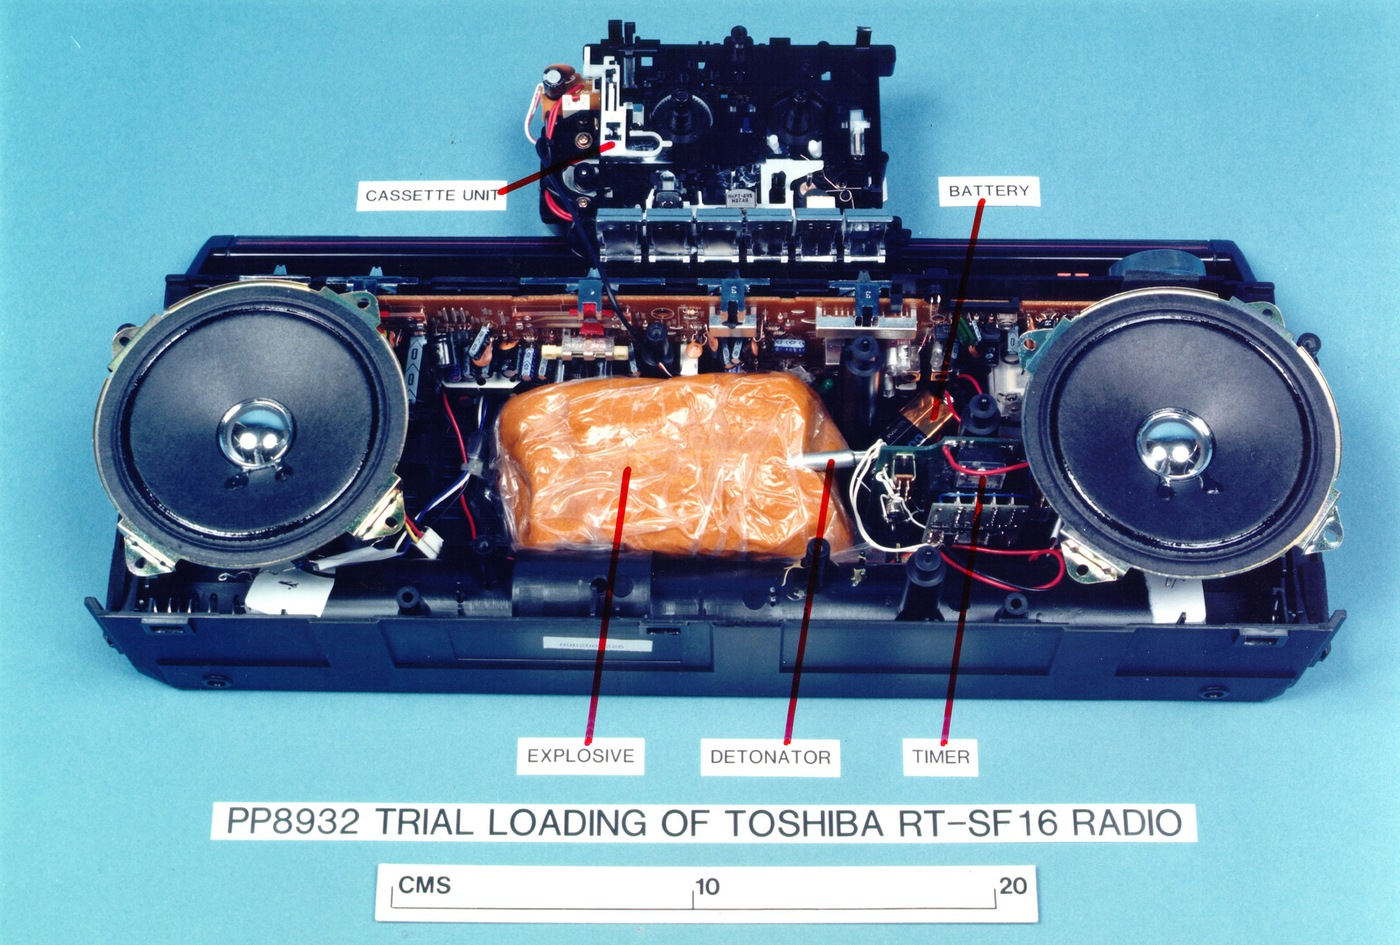 Replica of the plastic explosives hidden inside a cassette player that caused Pan Am Flight 103 to be blown out of the sky on December 21, 1988 over Lockerbie, Scotland. (Syracuse University photo)